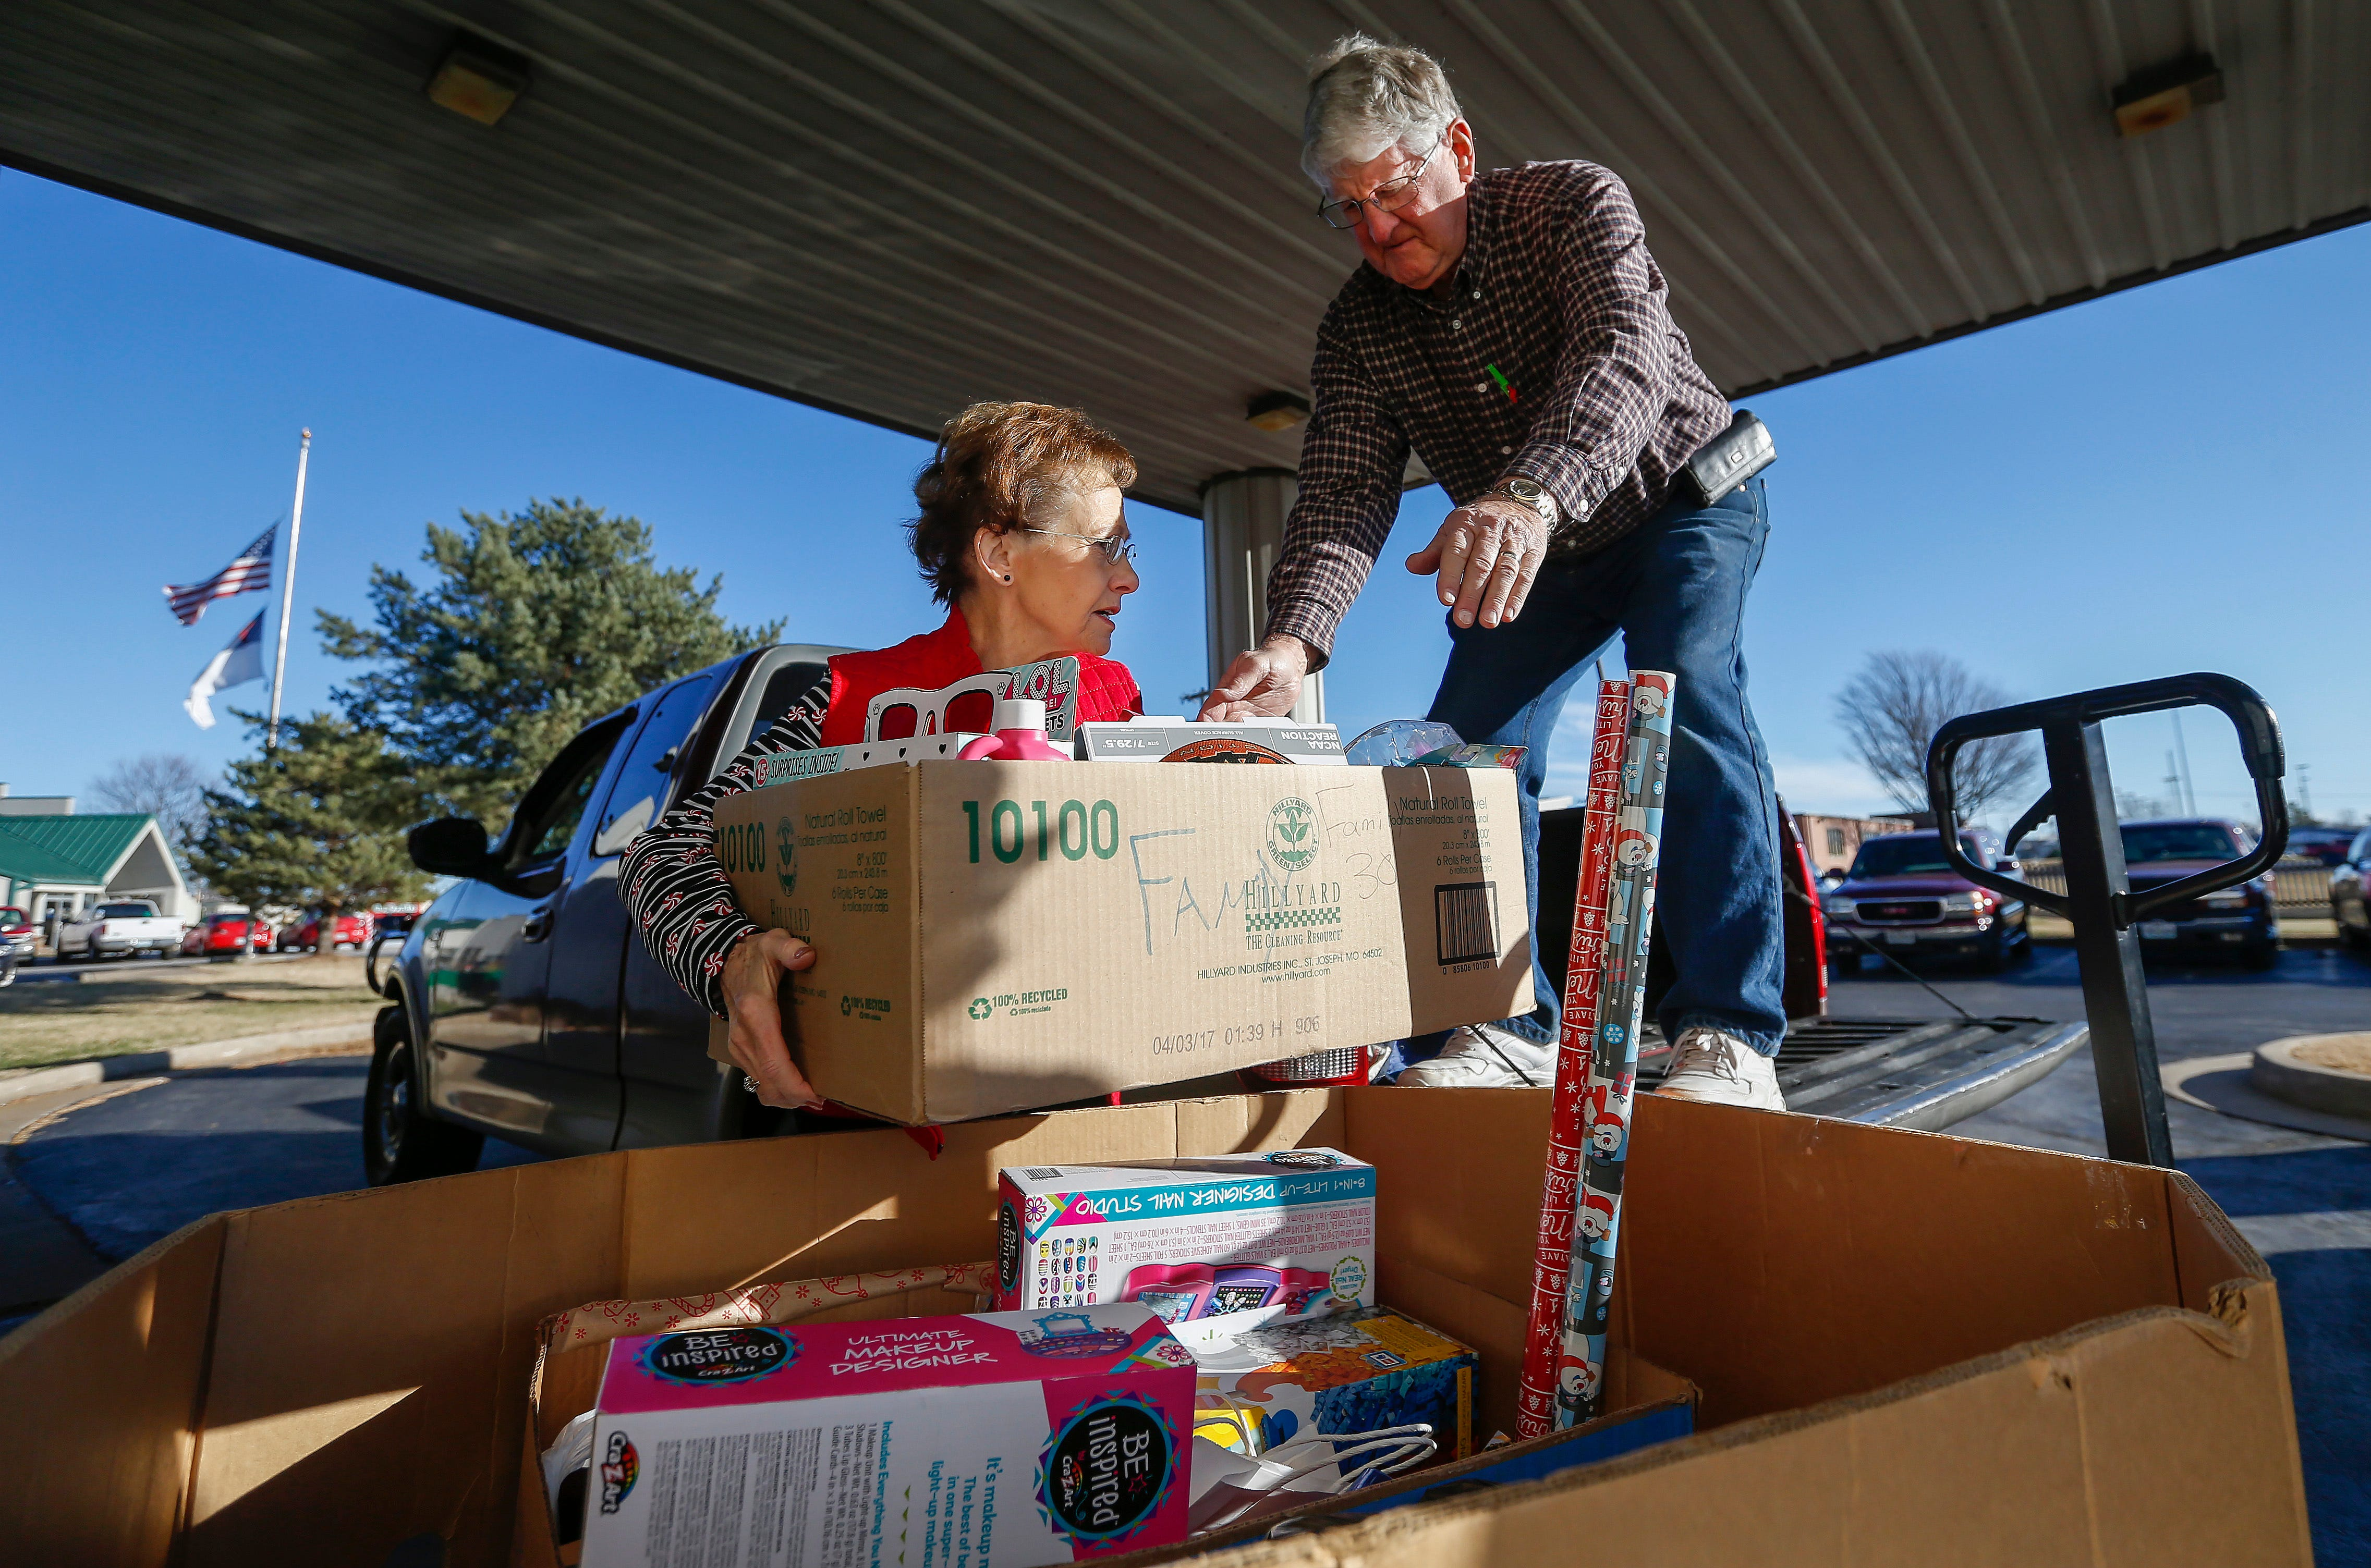 Sheryl Wachter, left, hands a box to her husband Ron Wachter as they load gifts into a client's truck during the Share Your Christmas distribution at Crosslines on Tuesday, Dec. 18, 2018.